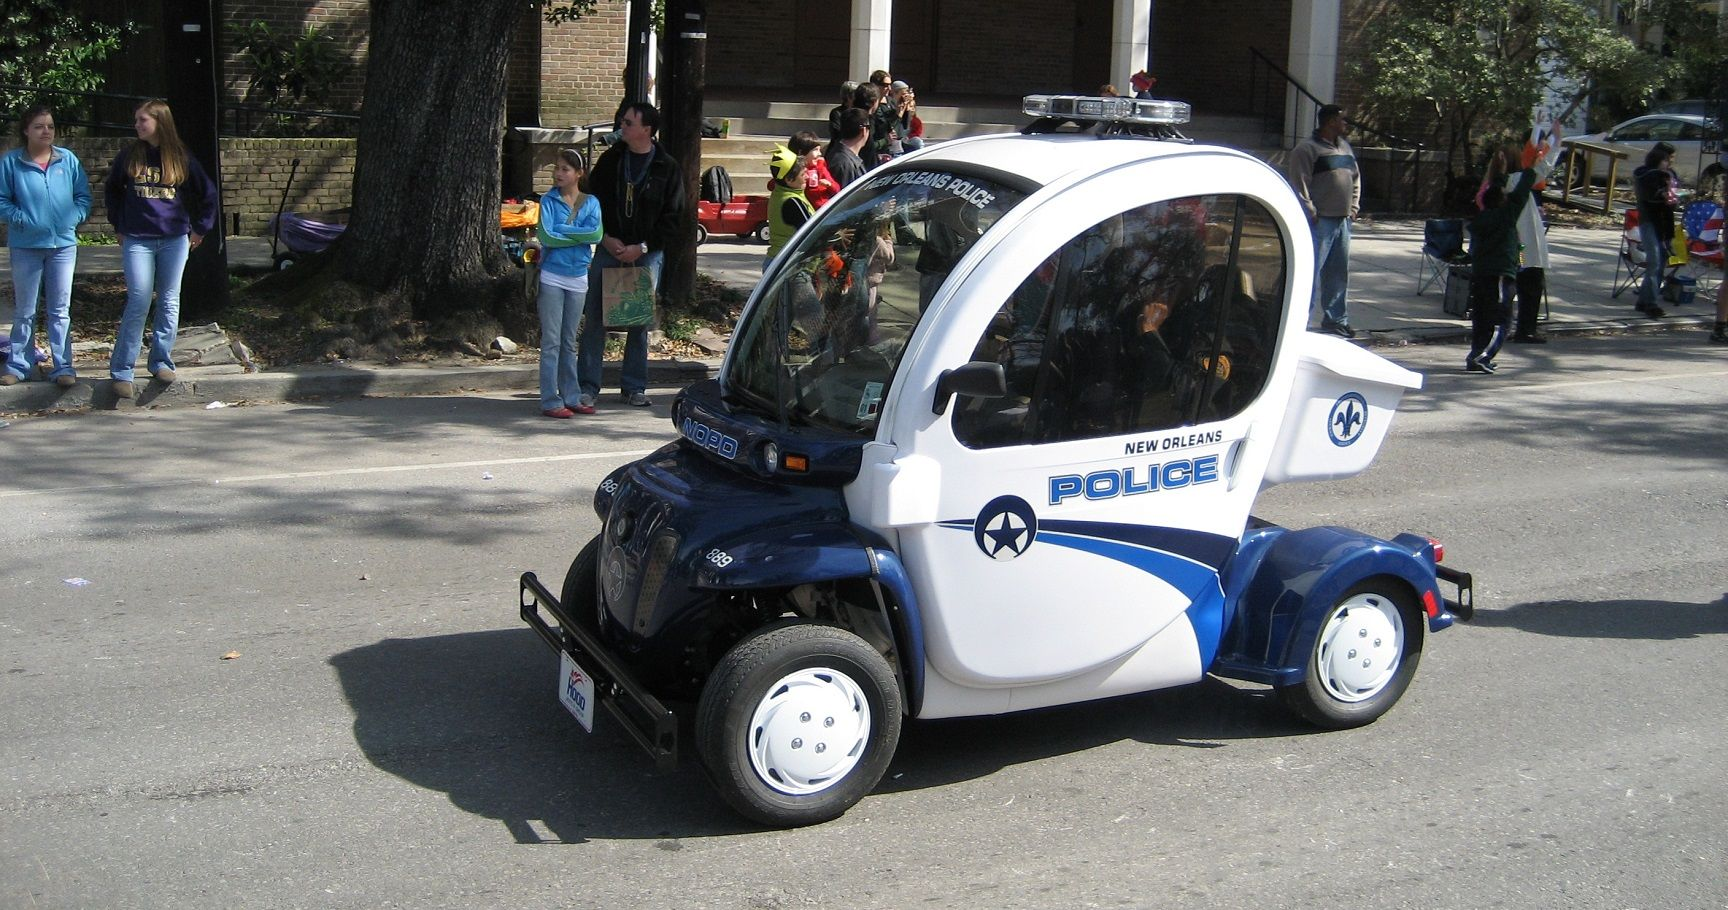 10 Countries With the World's Worst Police Cars